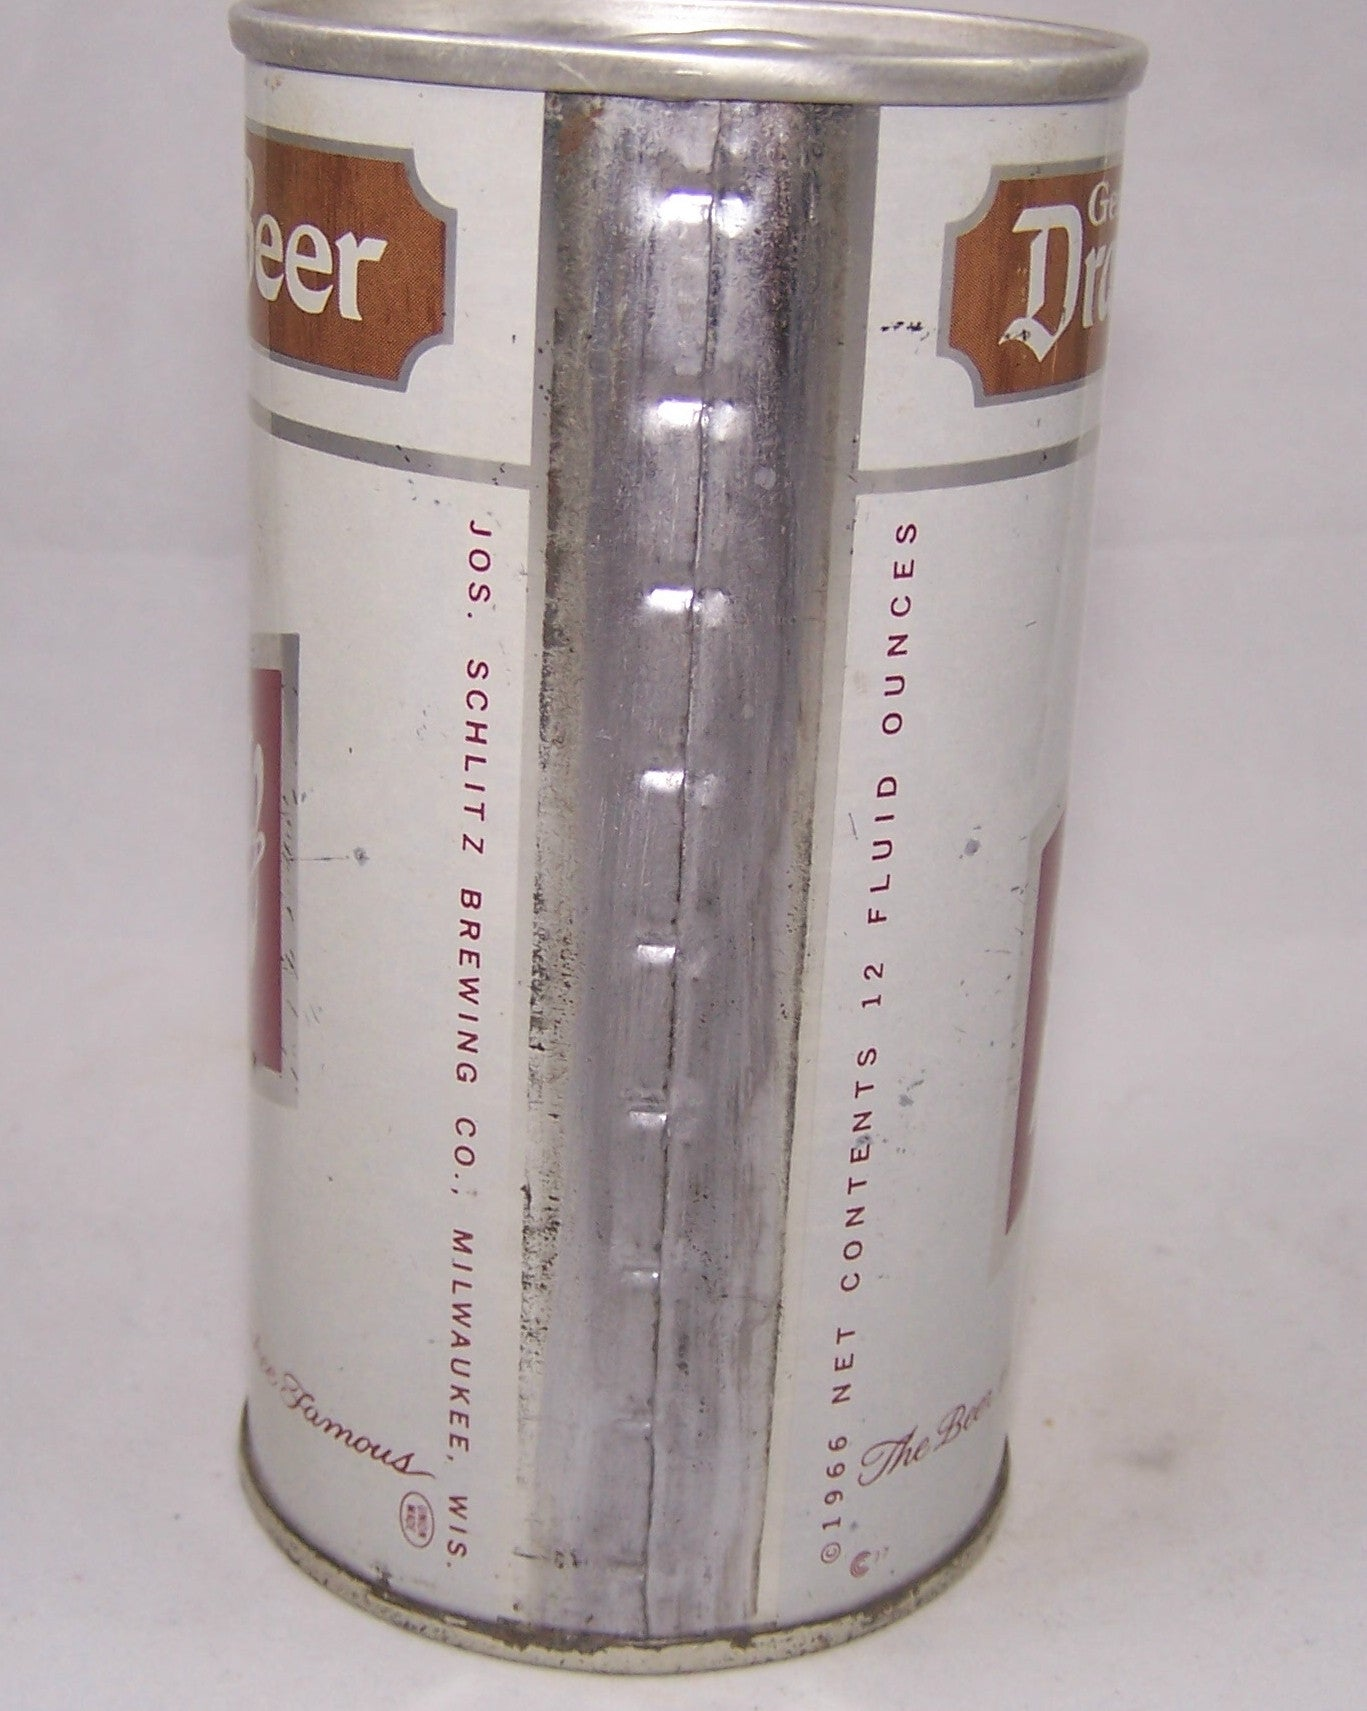 Schlitz Genuine Draught Beer, USBC II 121-04, Grade 1 or better. Sold on 07/22/16